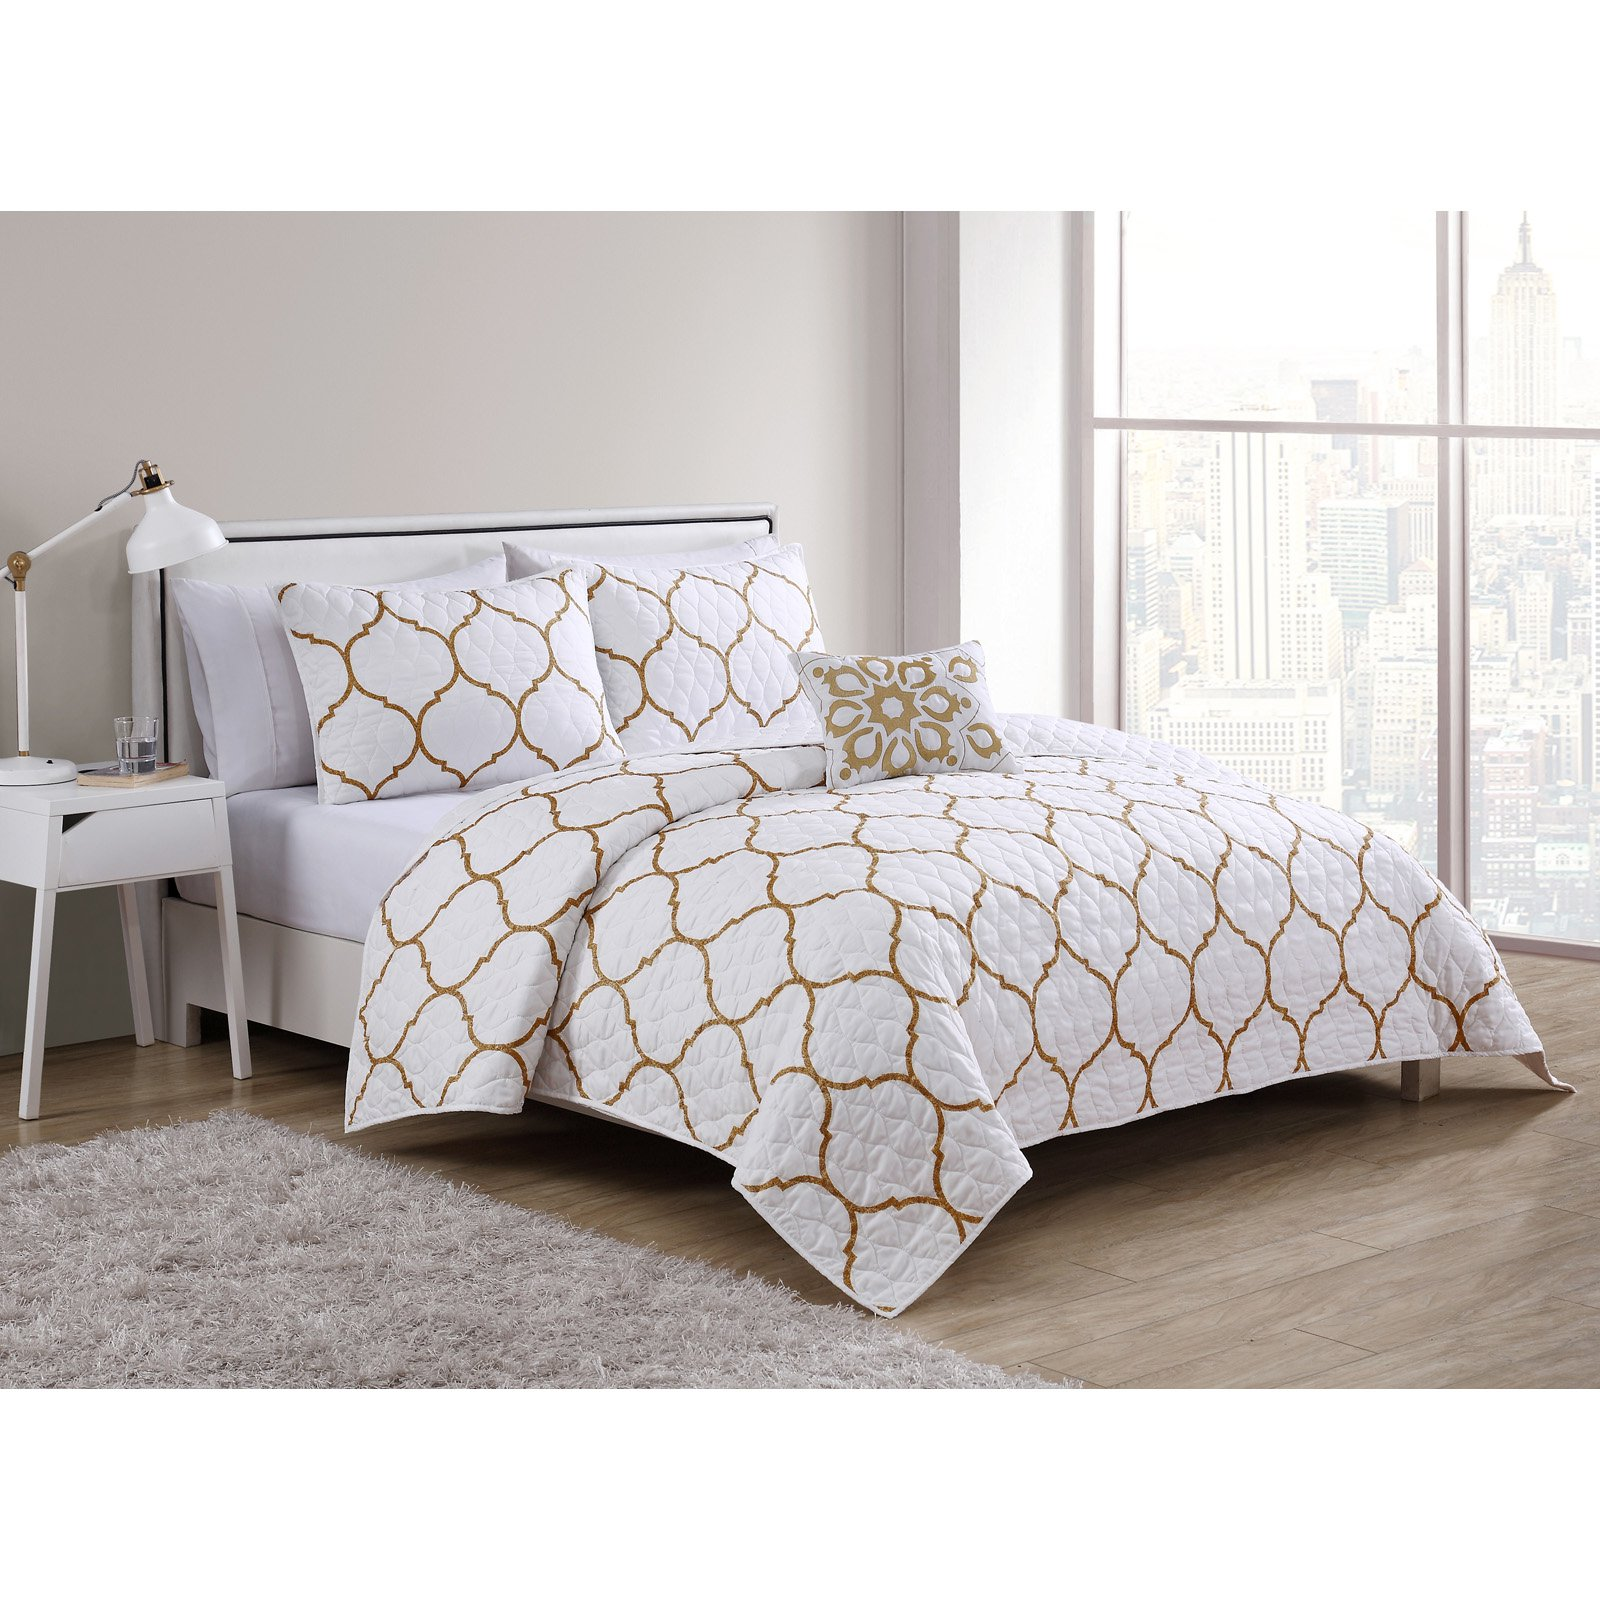 VCNY Home Ogee 3/4 Piece Quilt Bedding Set, Shams Included